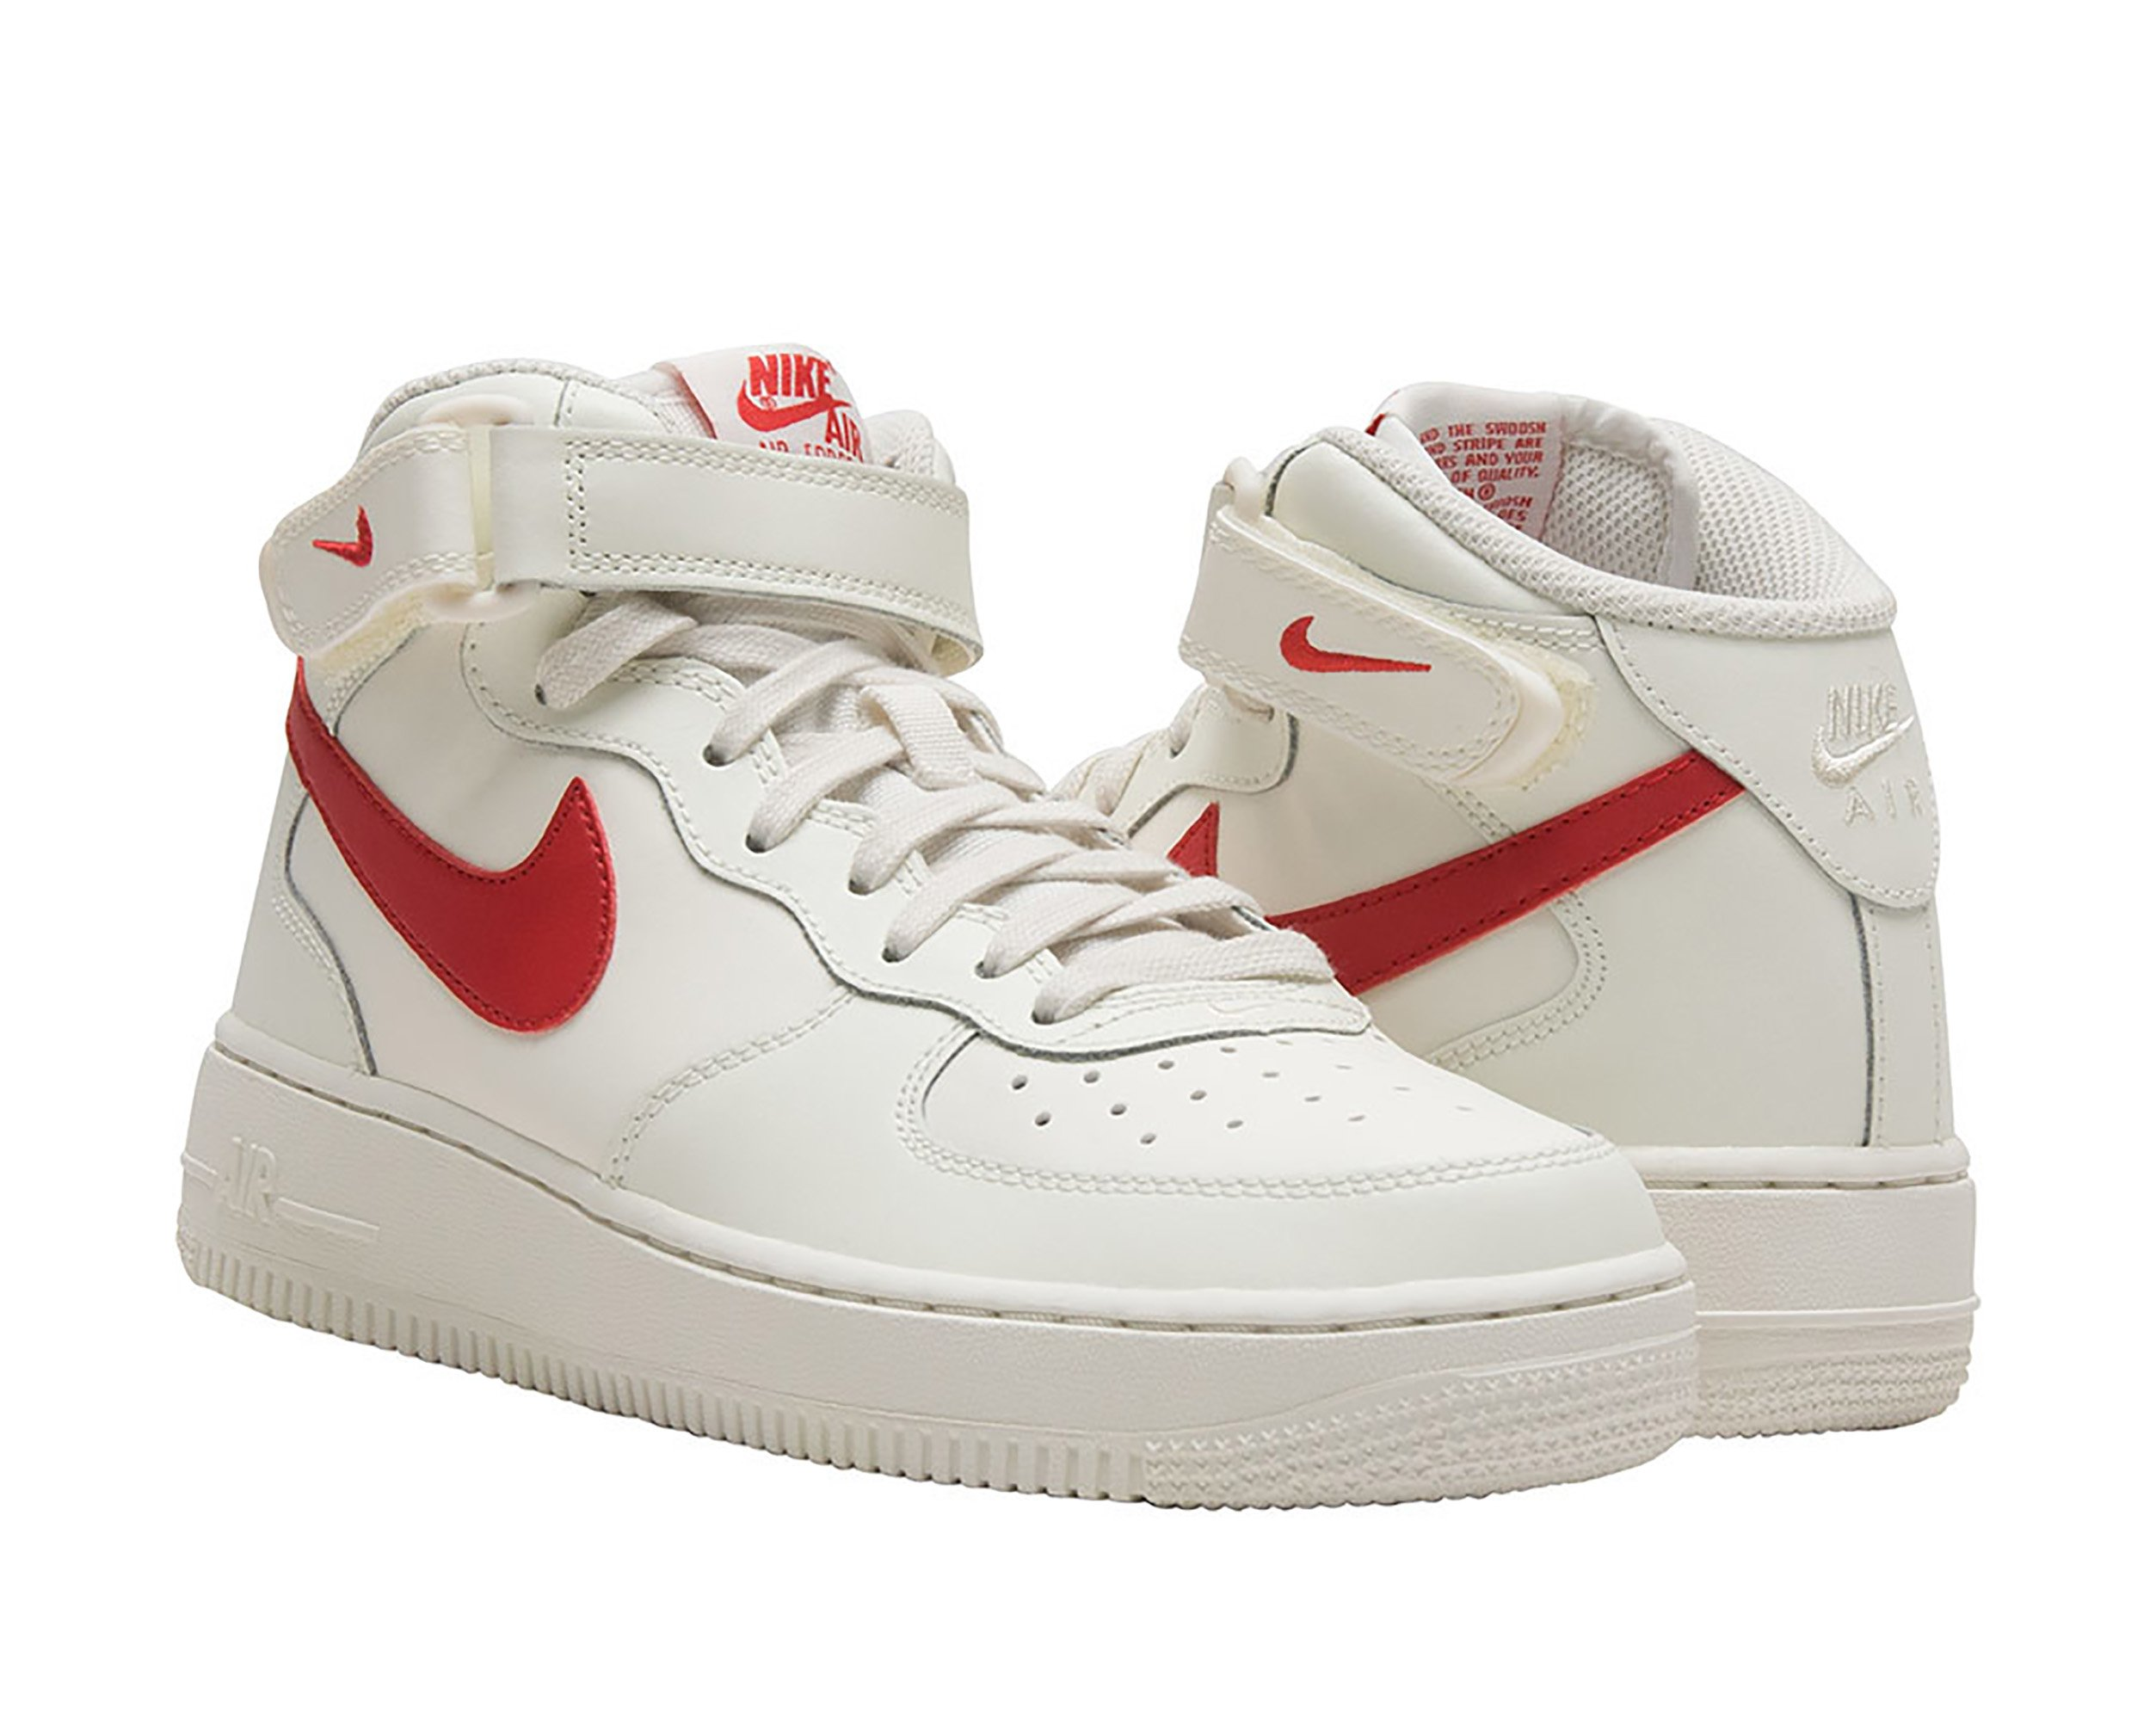 Nike Boy's Air Force 1 Mid Basketball Shoe Sail/University Red Size 4Y